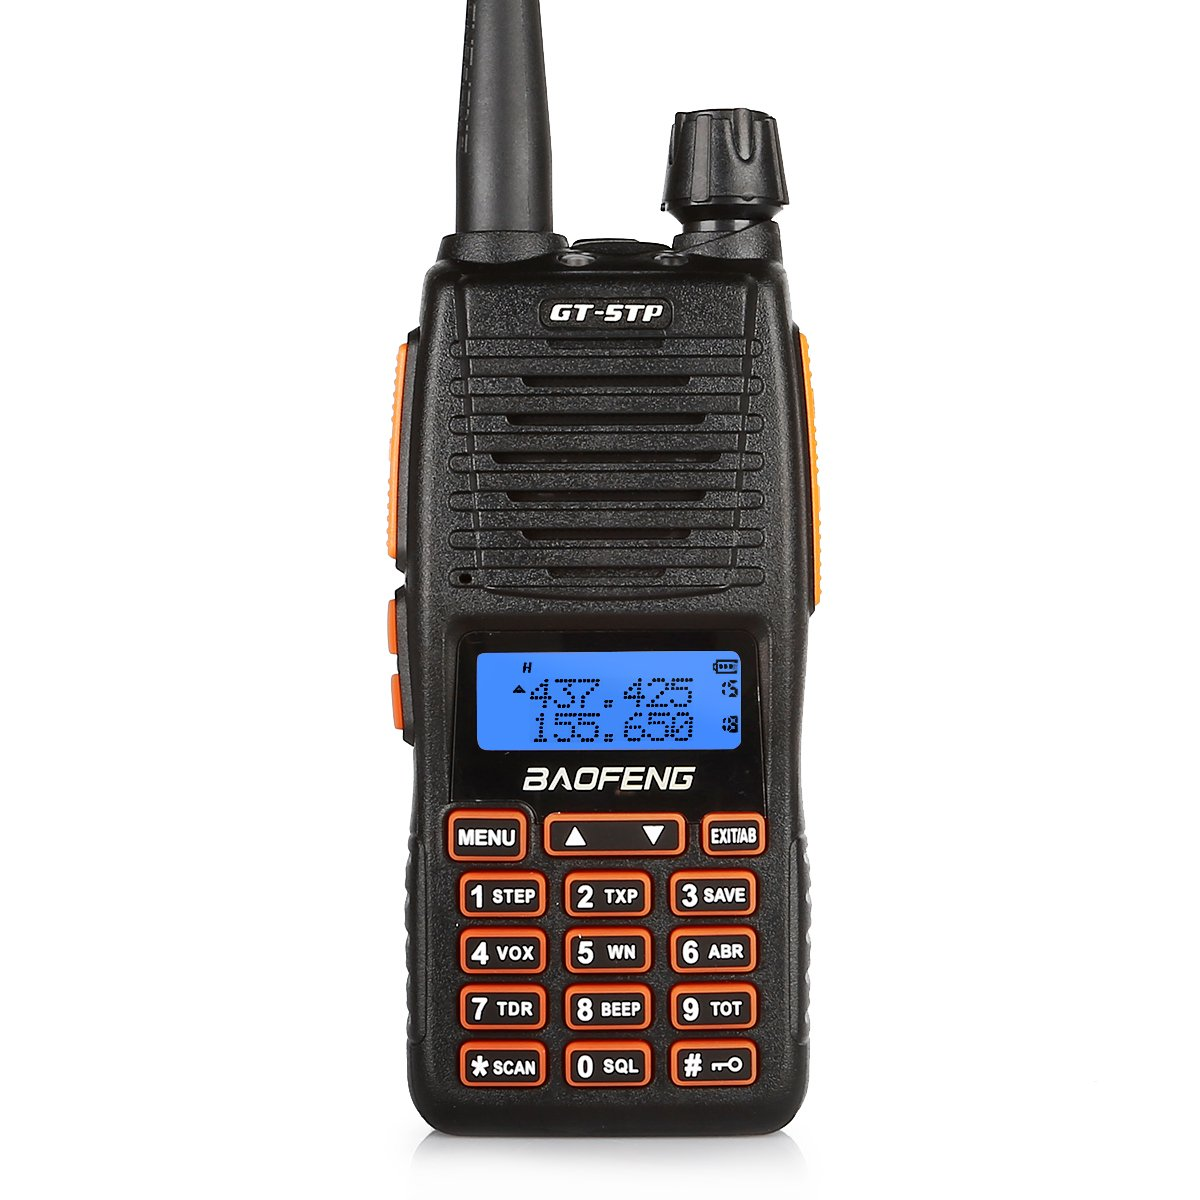 BaoFeng GT-5TP 8W 4W 1W Tri-Power UHF VHF Dual Band Amateur Ham Radio Handheld Two Way Radio Walkie Talkie with Earpiece 2000mAh Battery Dual PTT